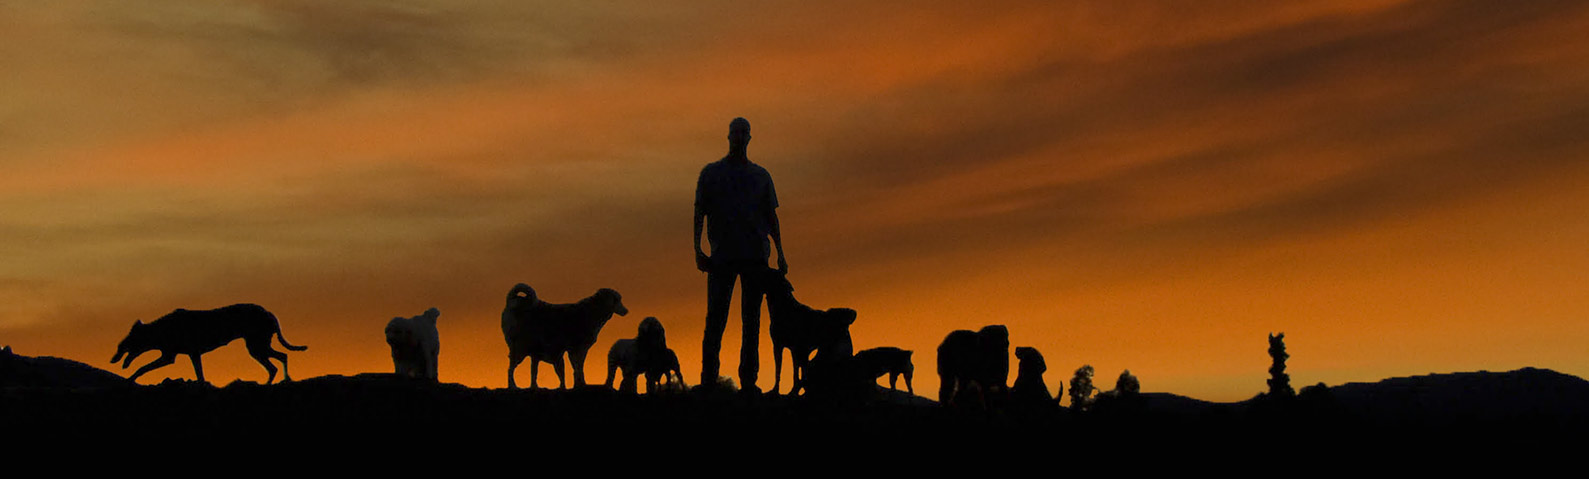 Dominant Dogs Footer Image